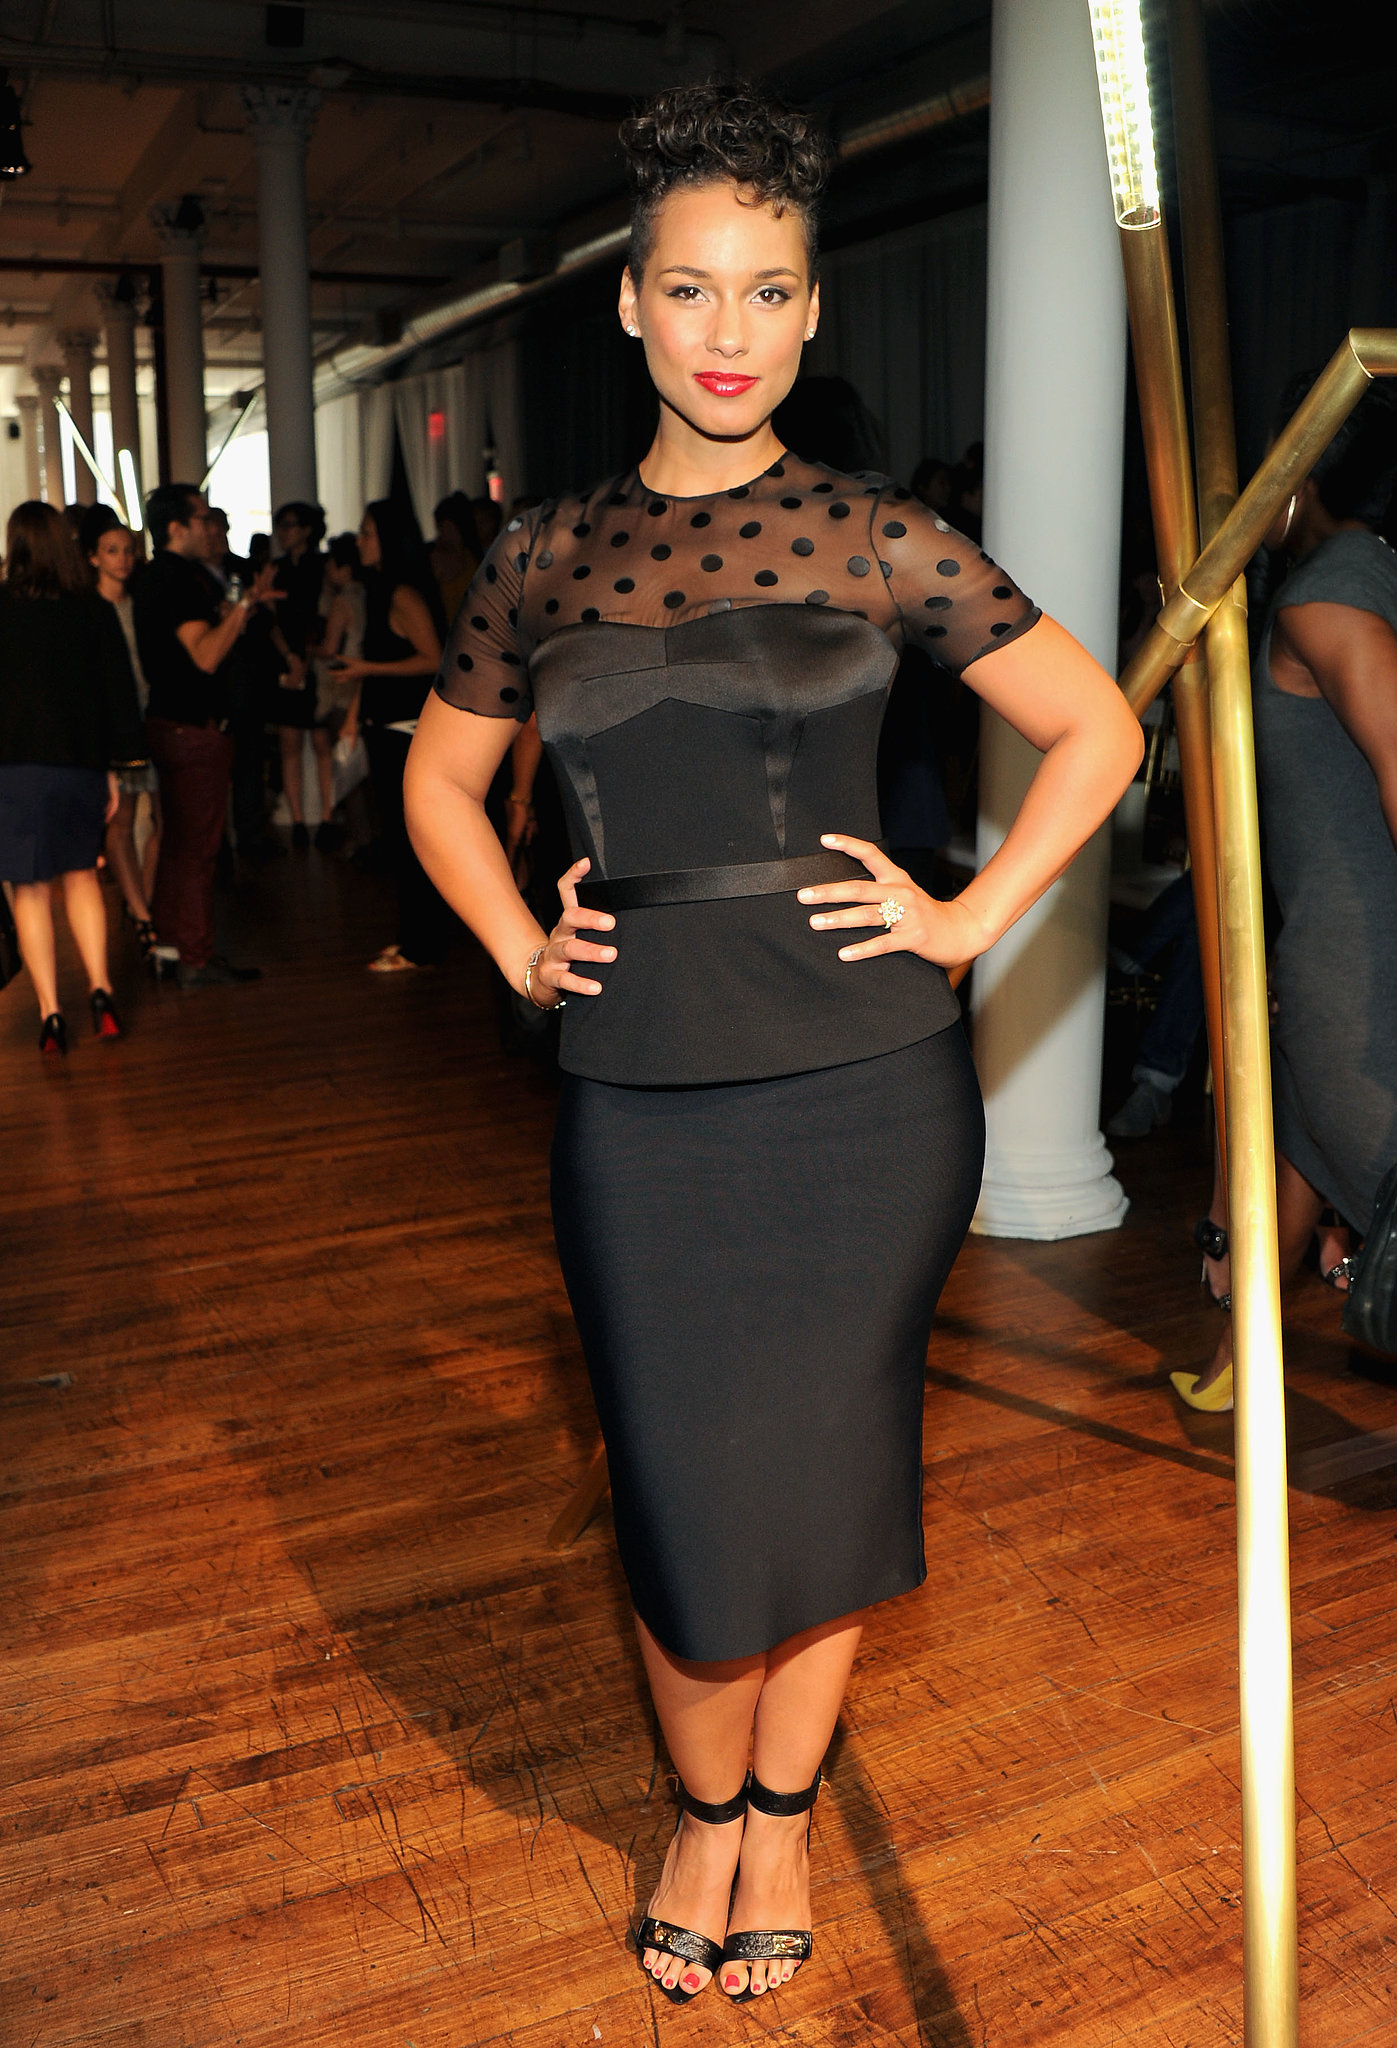 Alicia Keys got sophisticated in a black peplum ensemble featuring polka dots at the Jason Wu show at New York Fashion Week.